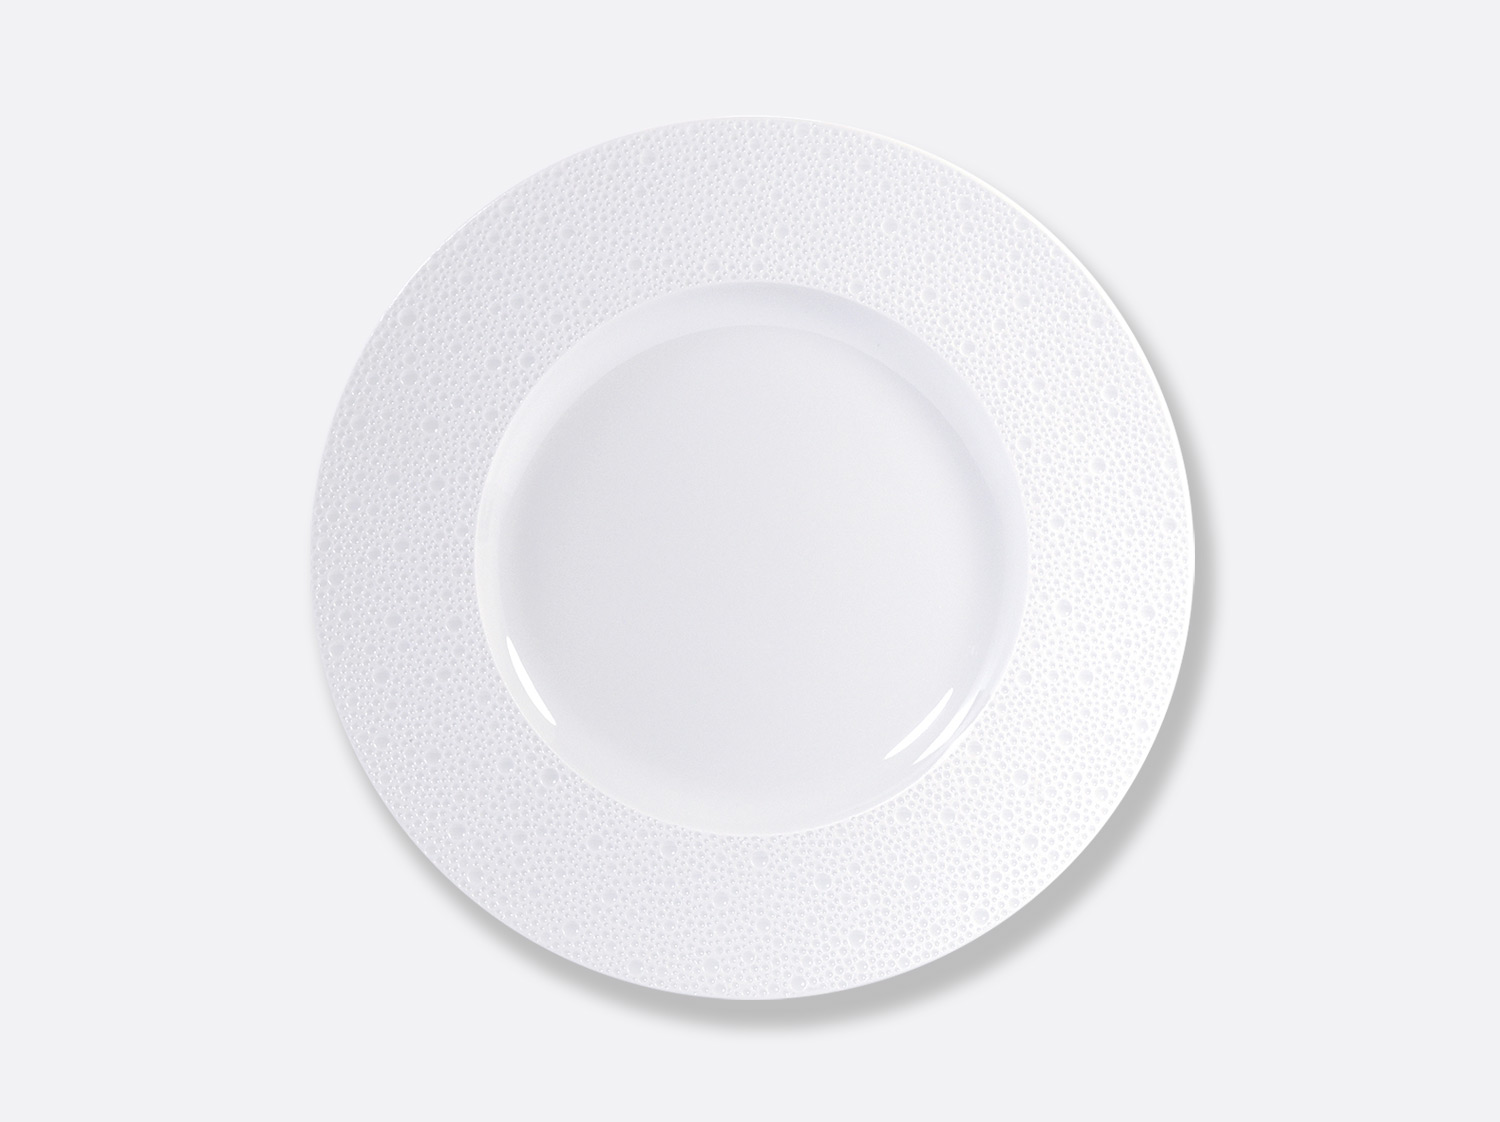 Assiette plate 31,5 cm en porcelaine de la collection Ecume Bernardaud